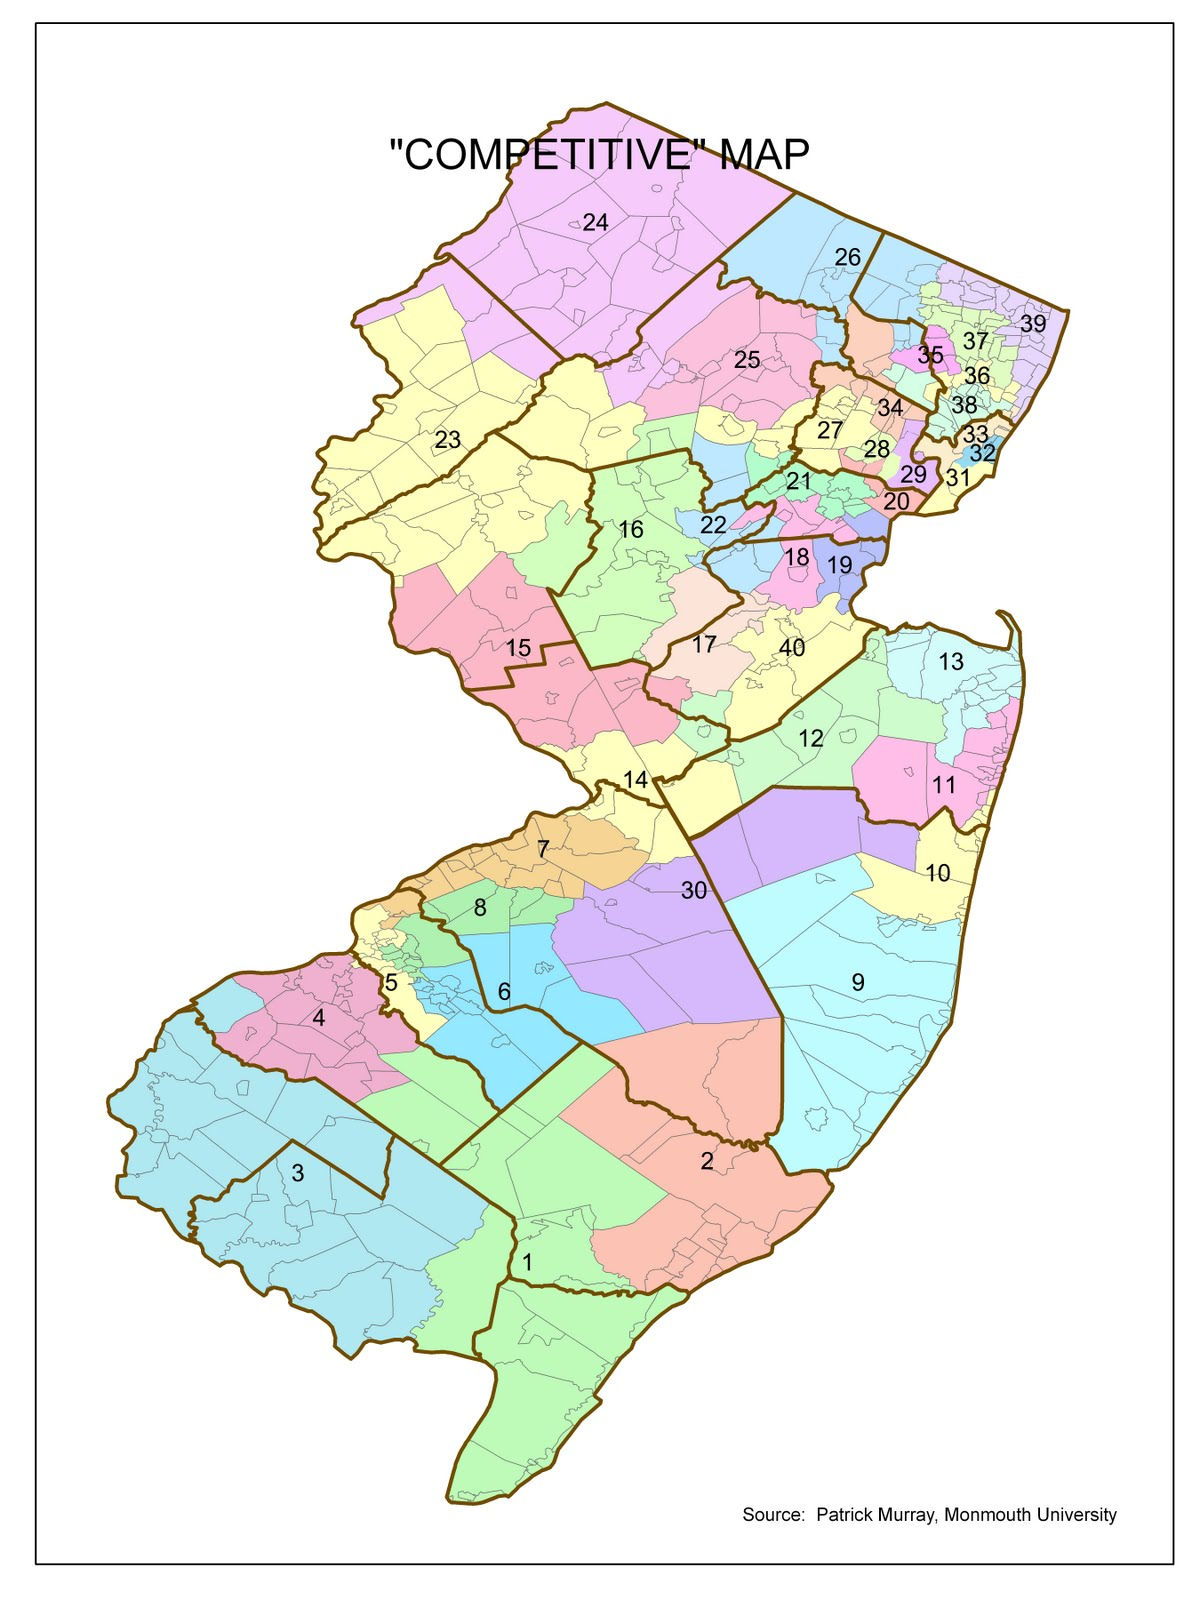 in each district 3 description of district characteristics in the proposed map and 4 description of district characteristics in the current map